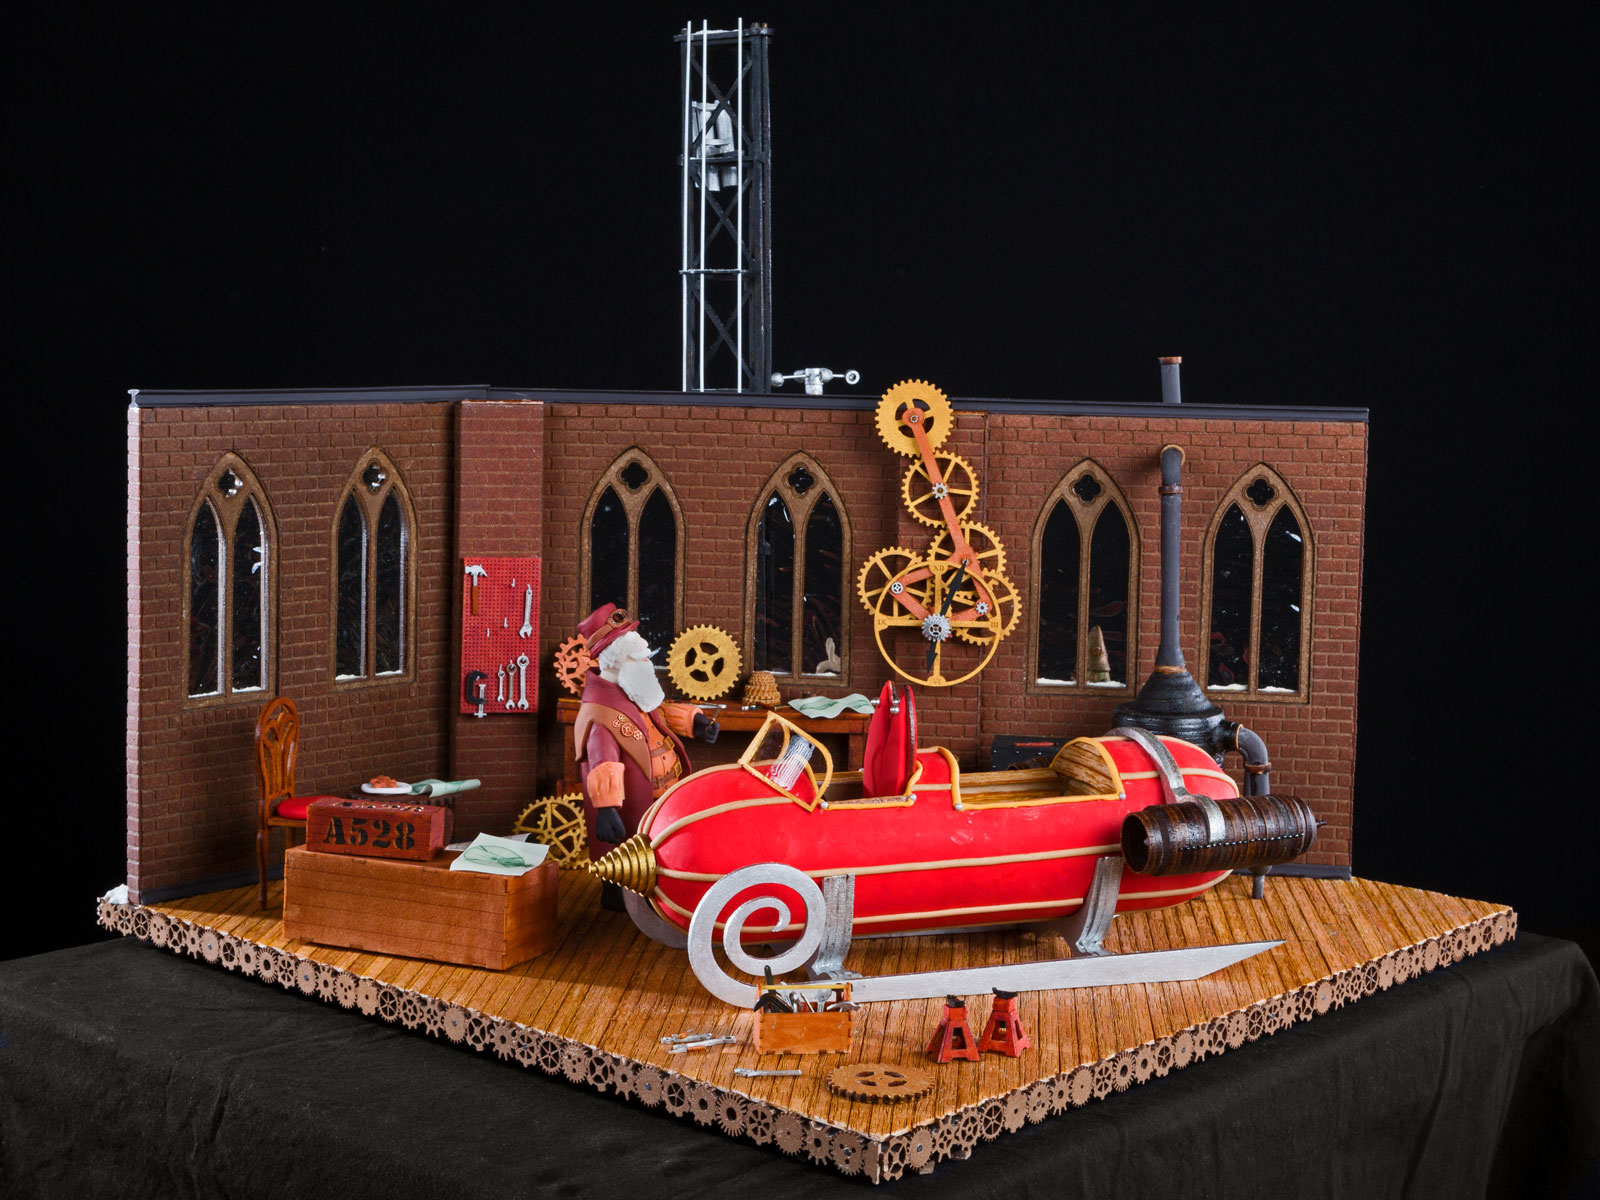 Take a Look at This Year's National Gingerbread House Competition Winners